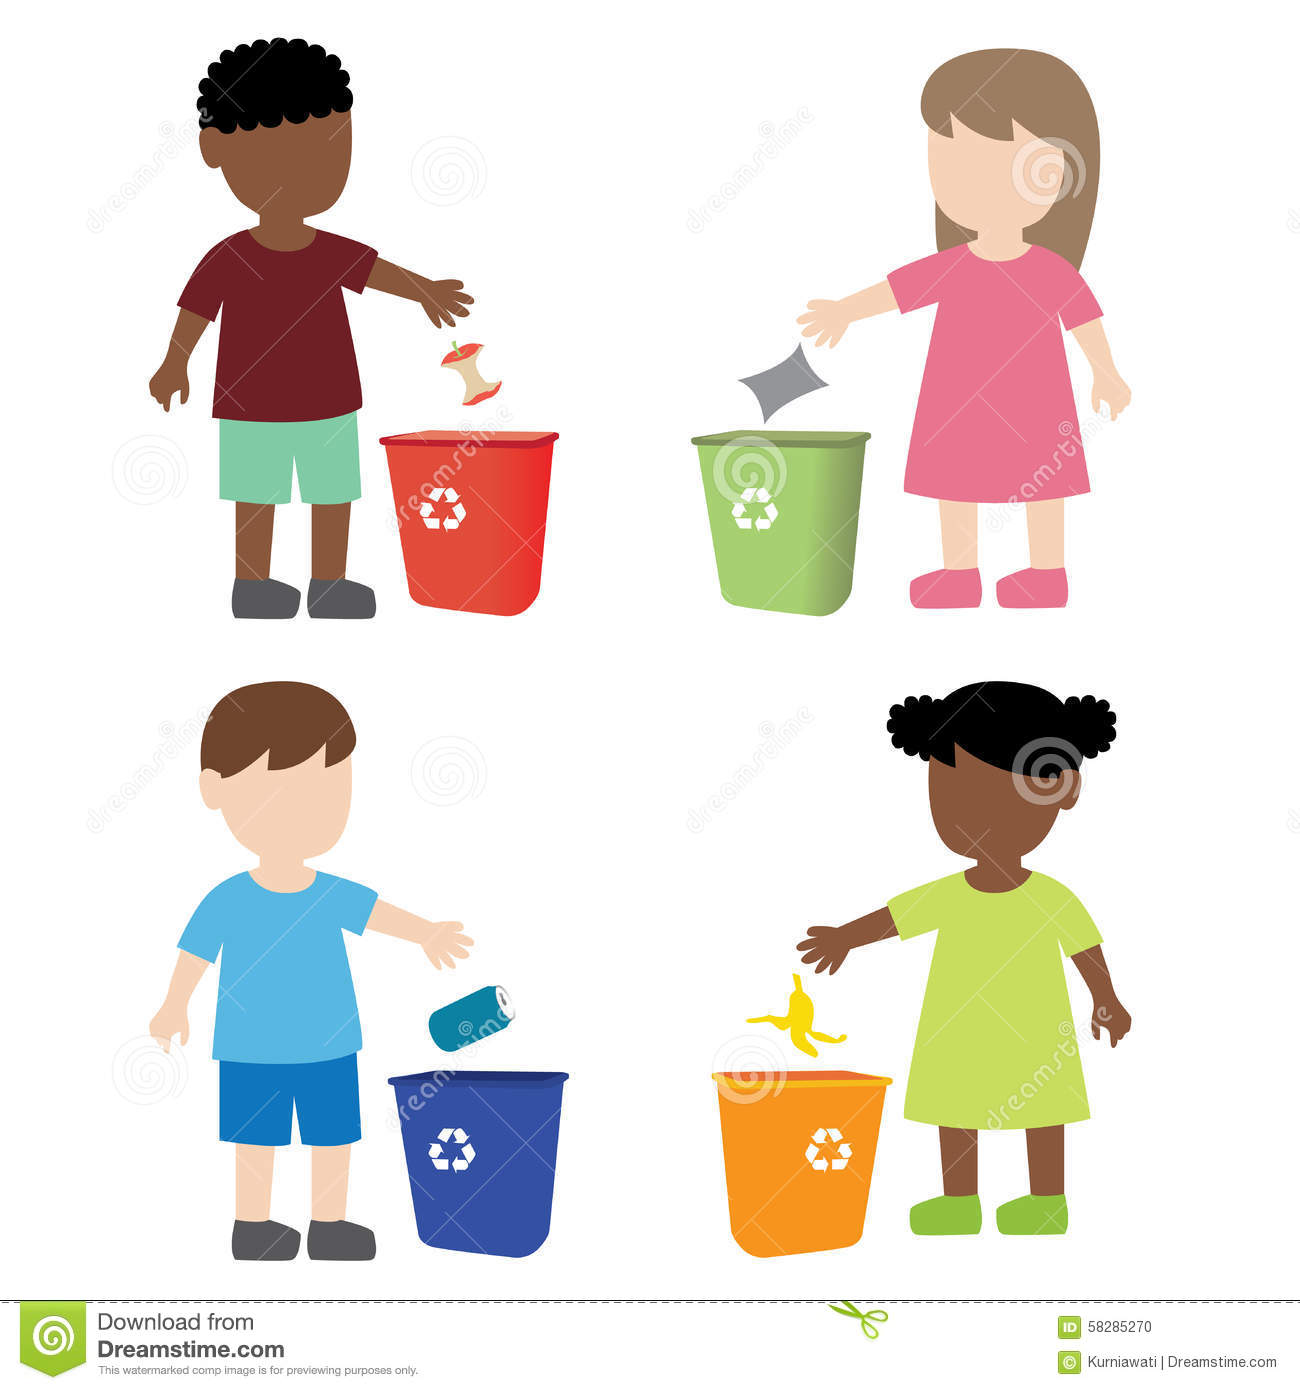 Boy and girl picking up trash - Download Free Vectors, Clipart Graphics &  Vector Art